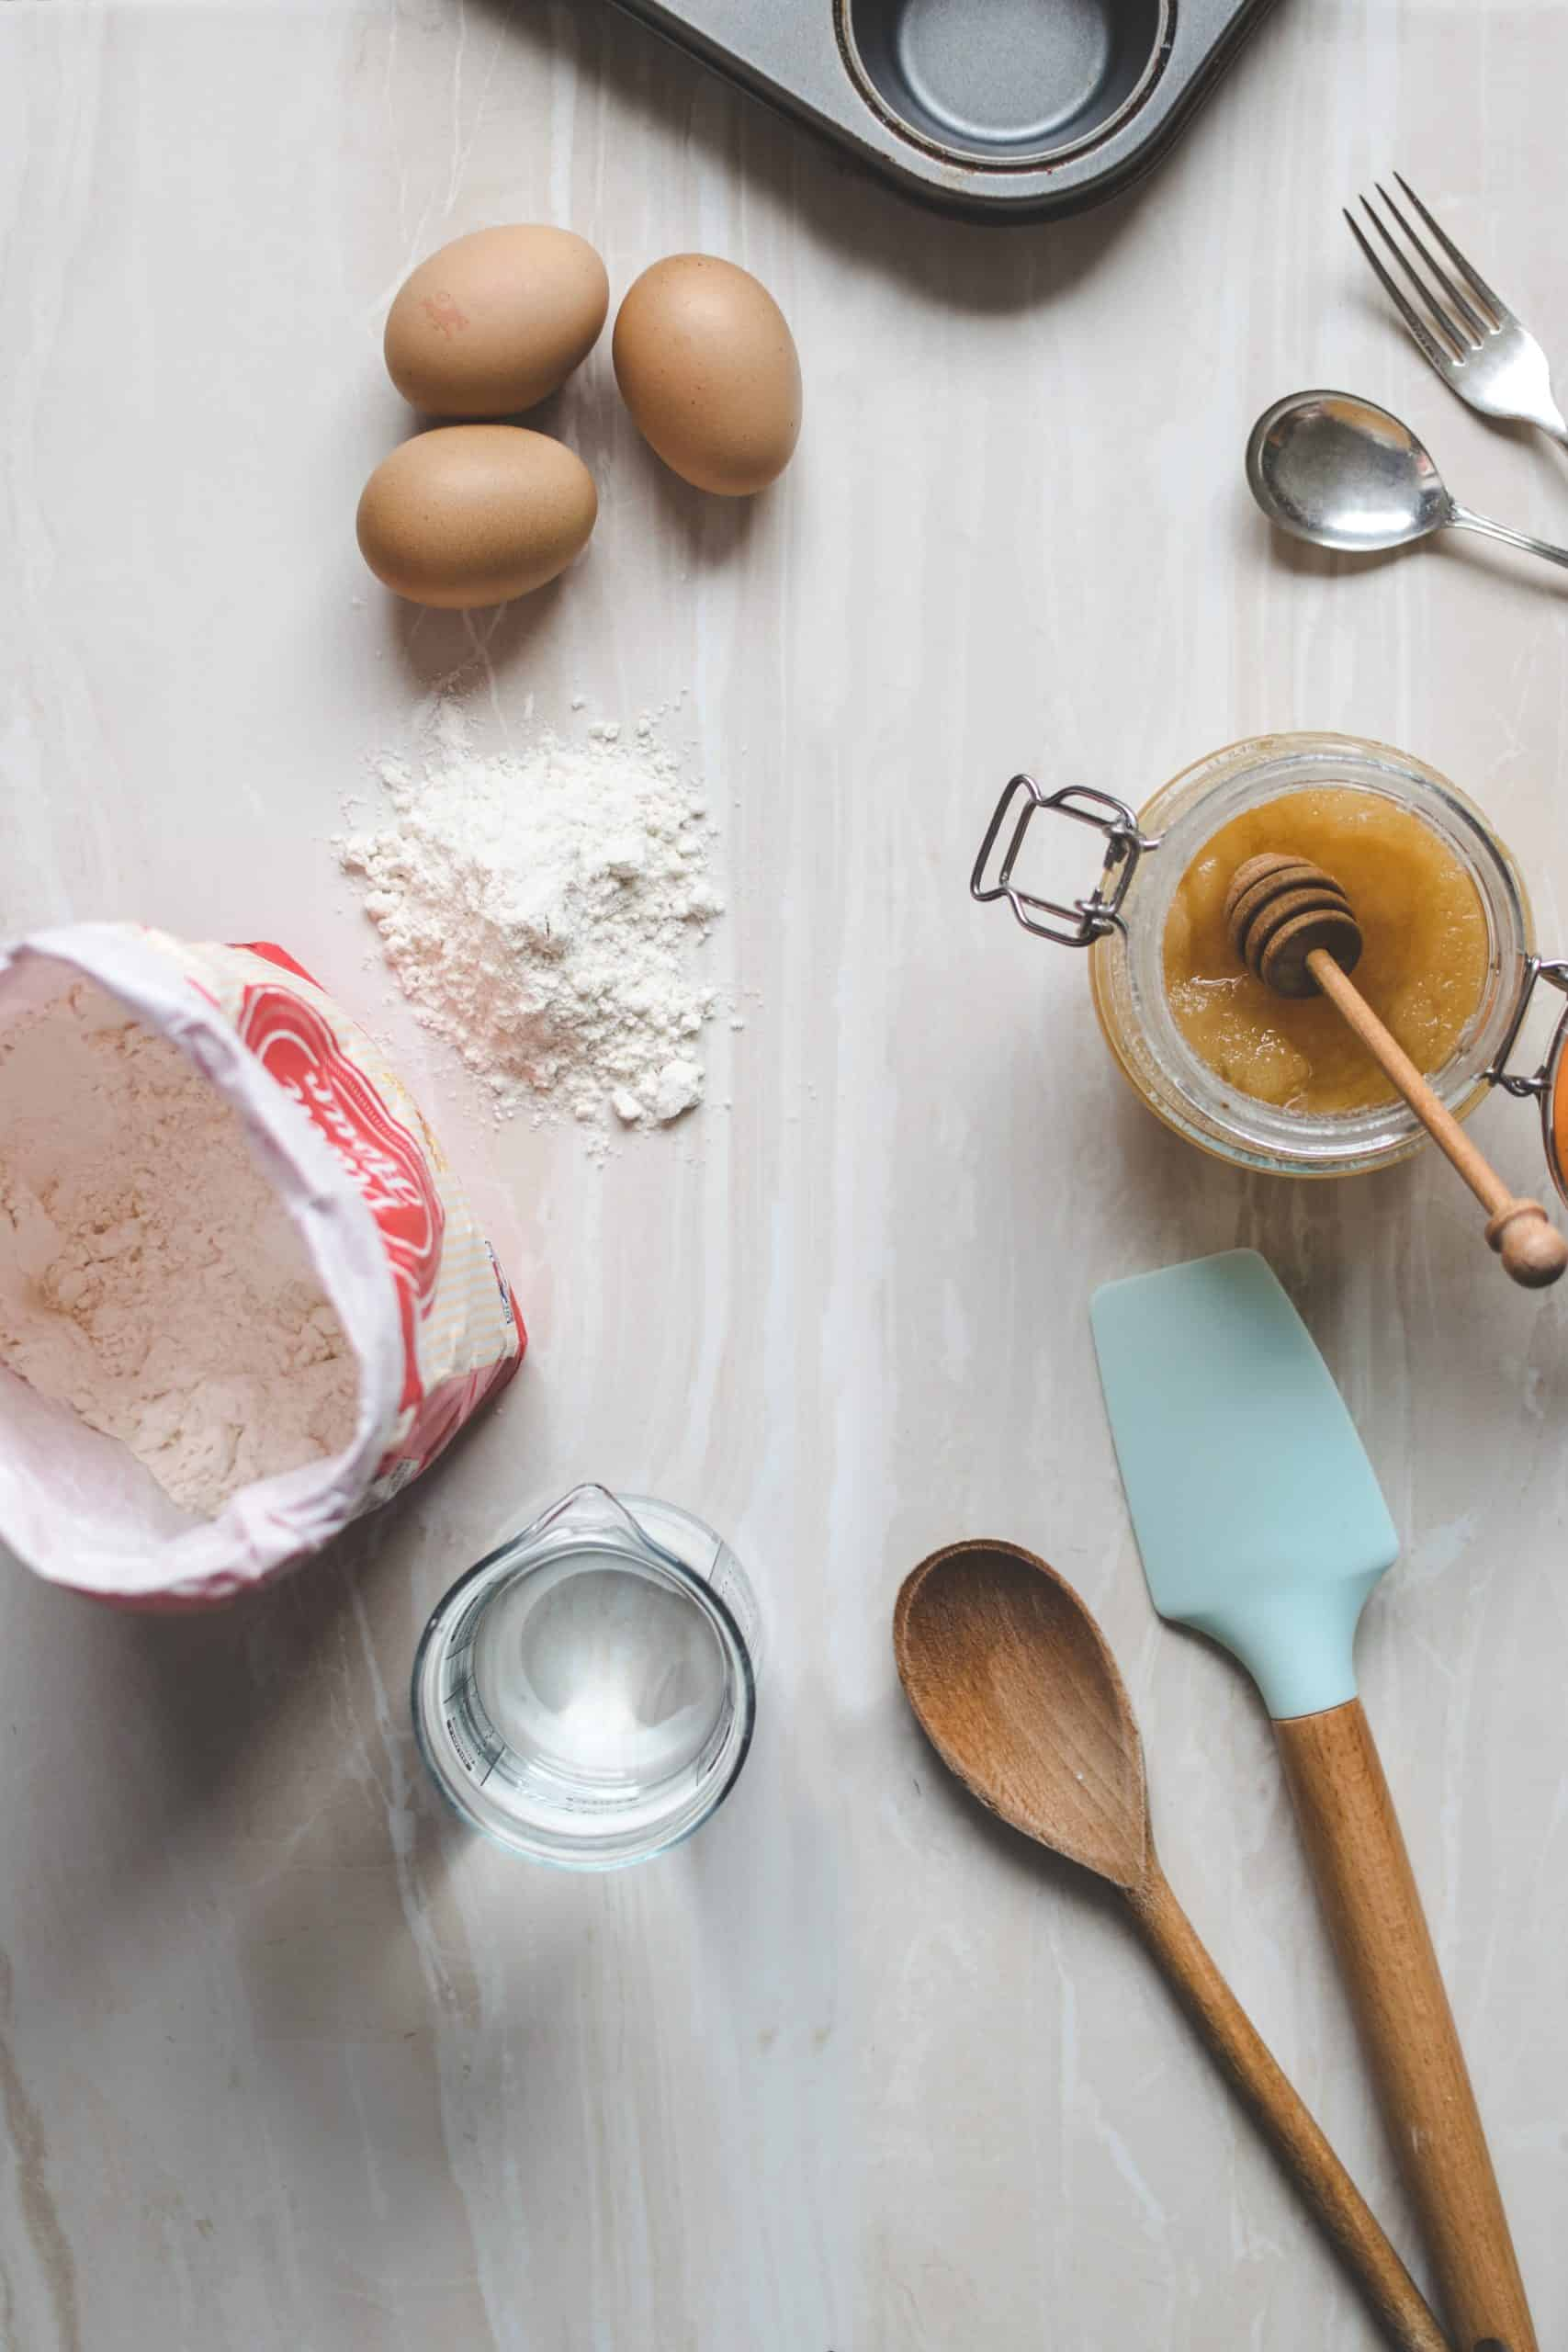 Passion For Baking - Why a Passion For Baking Is Important As a Career